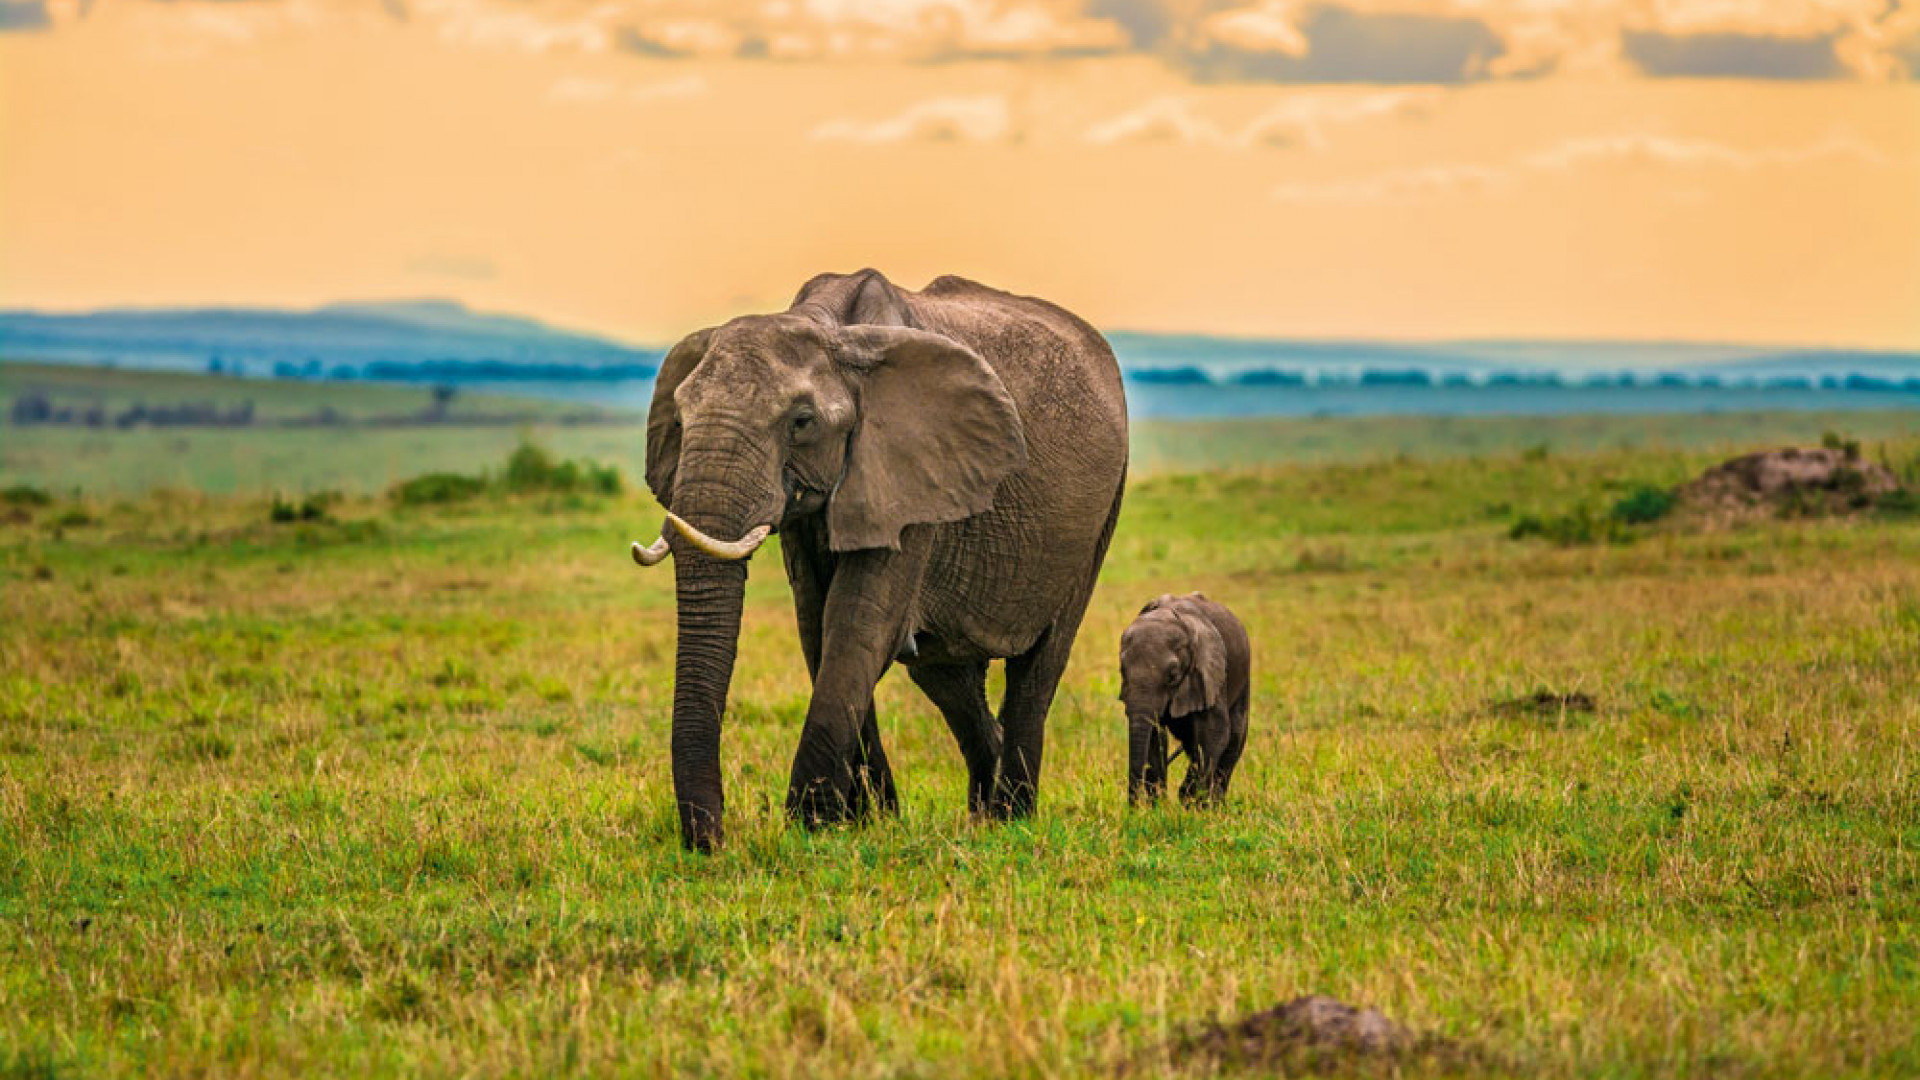 Elephants in a Kenyan game reserve